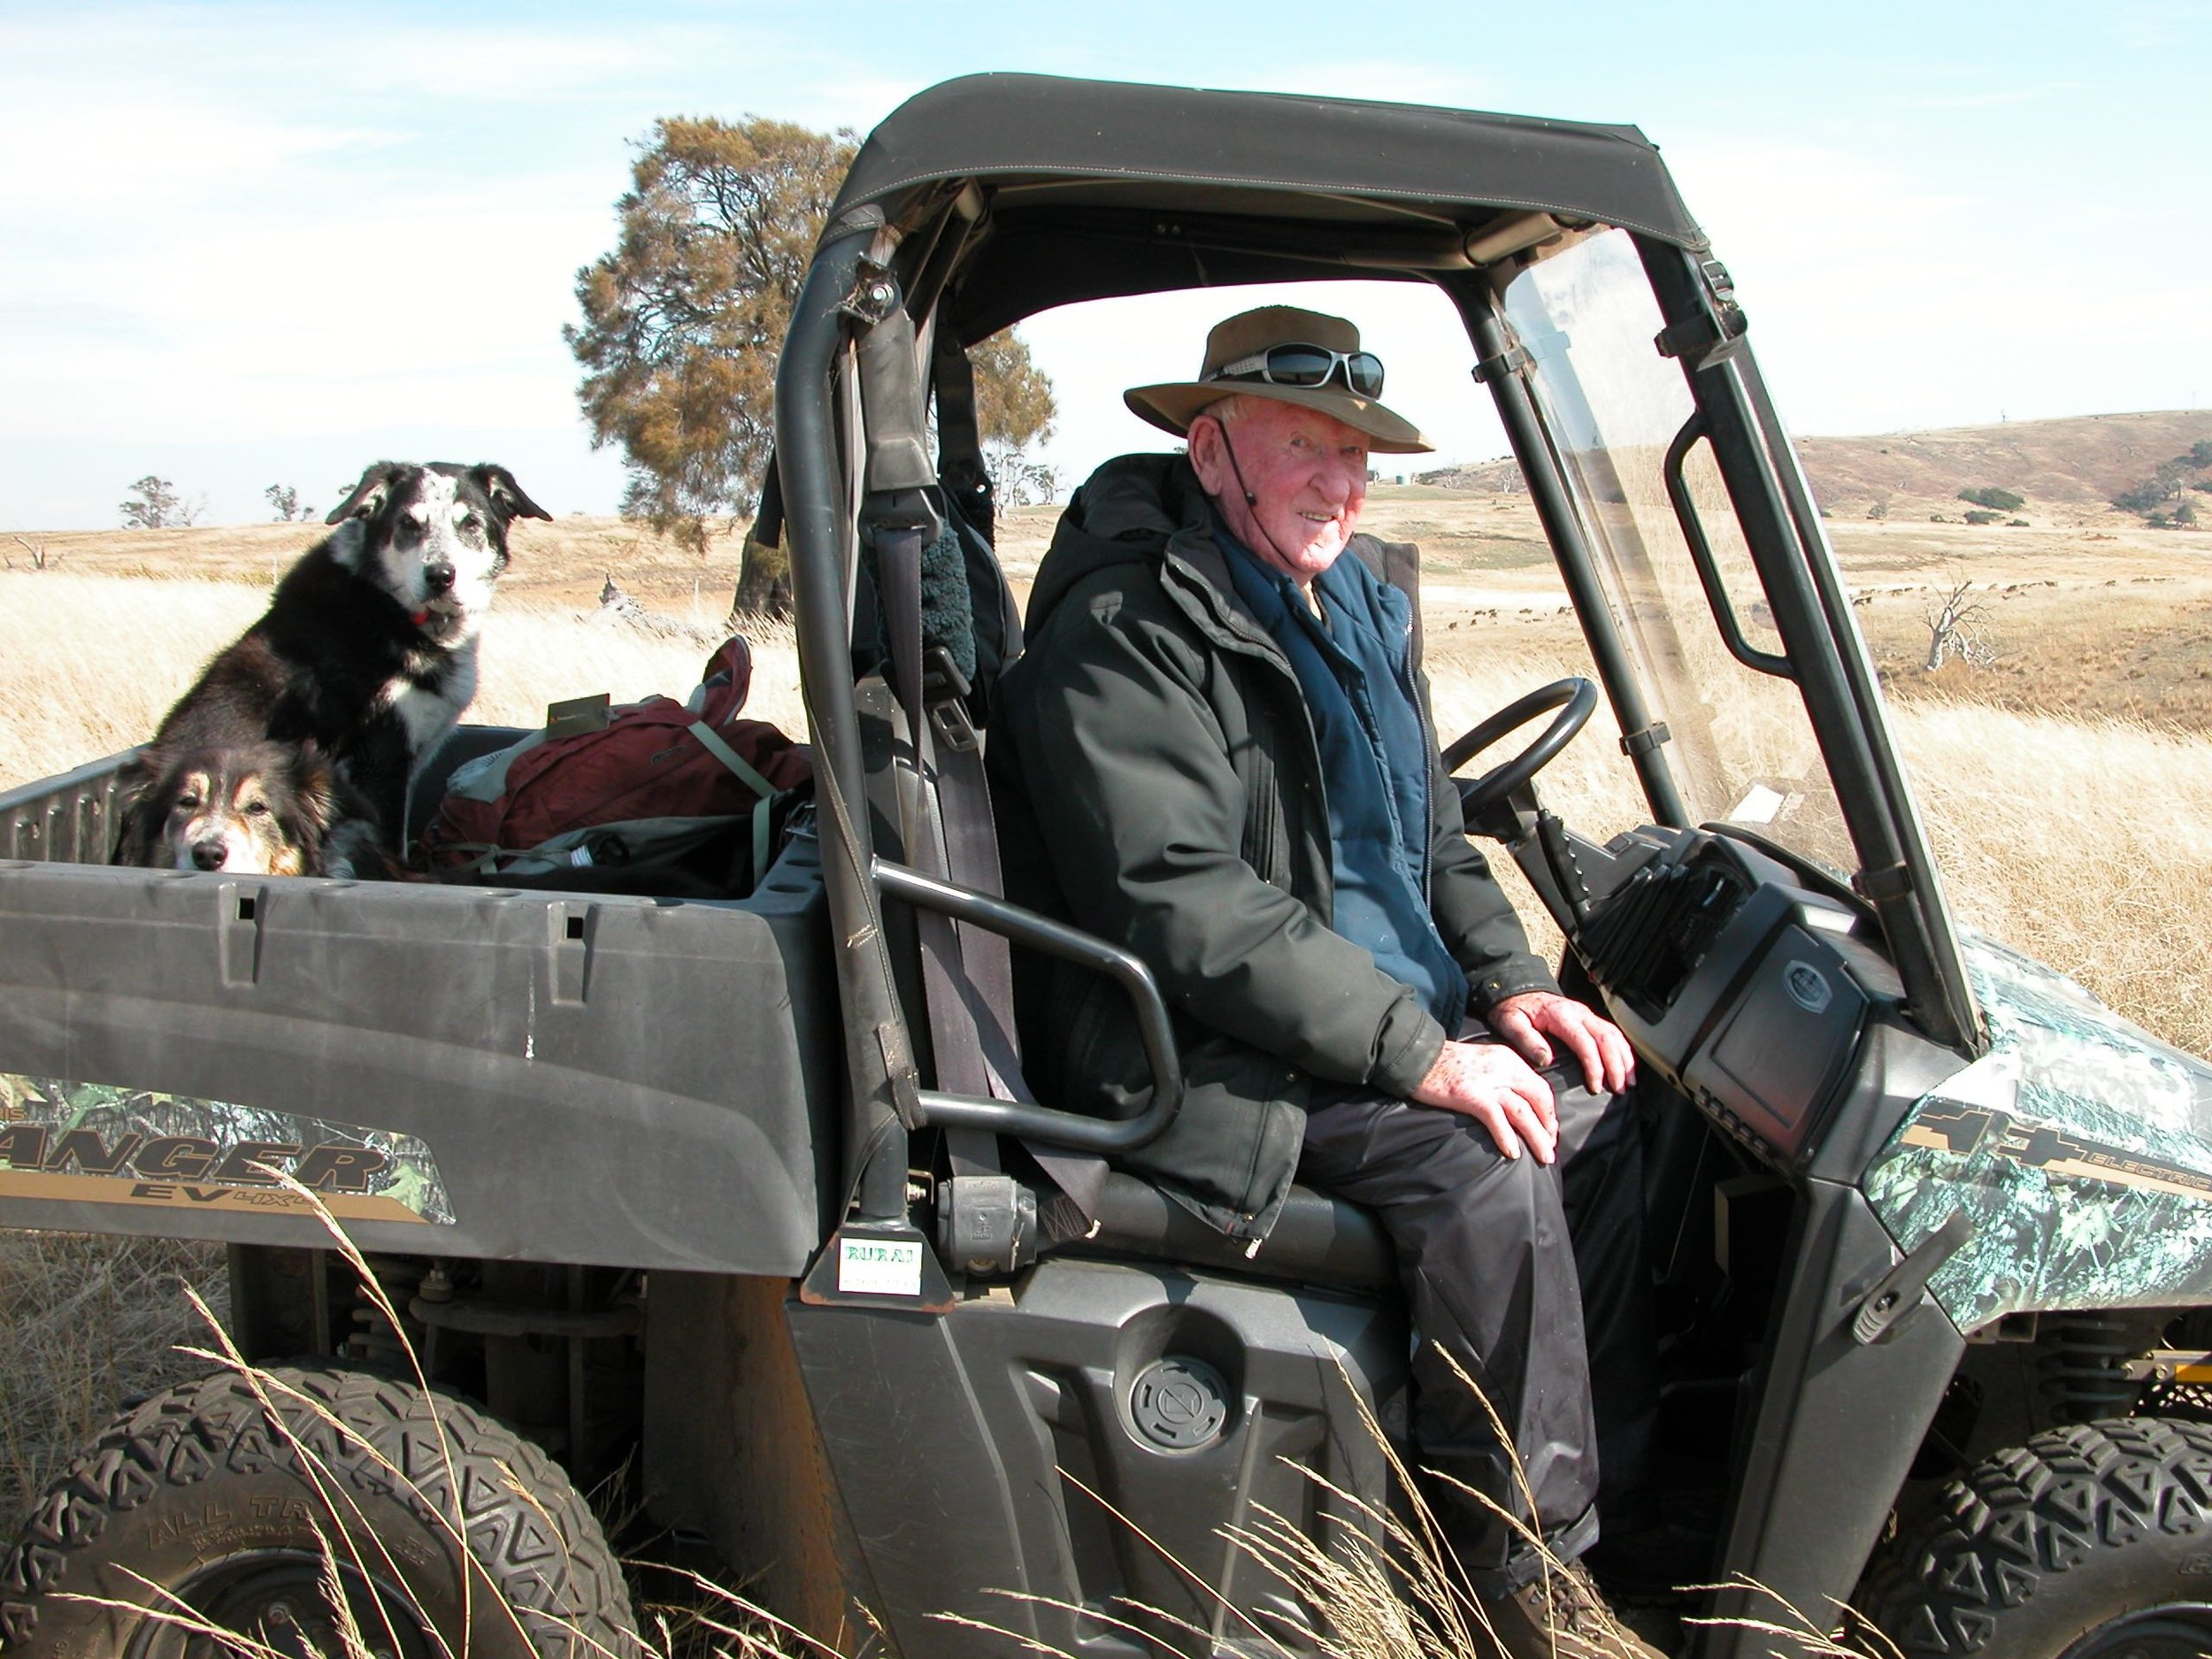 Retired stockman Davey went around the ewes and lambs with me a couple of times. He was just as perplexed as I was about the ewe deaths.